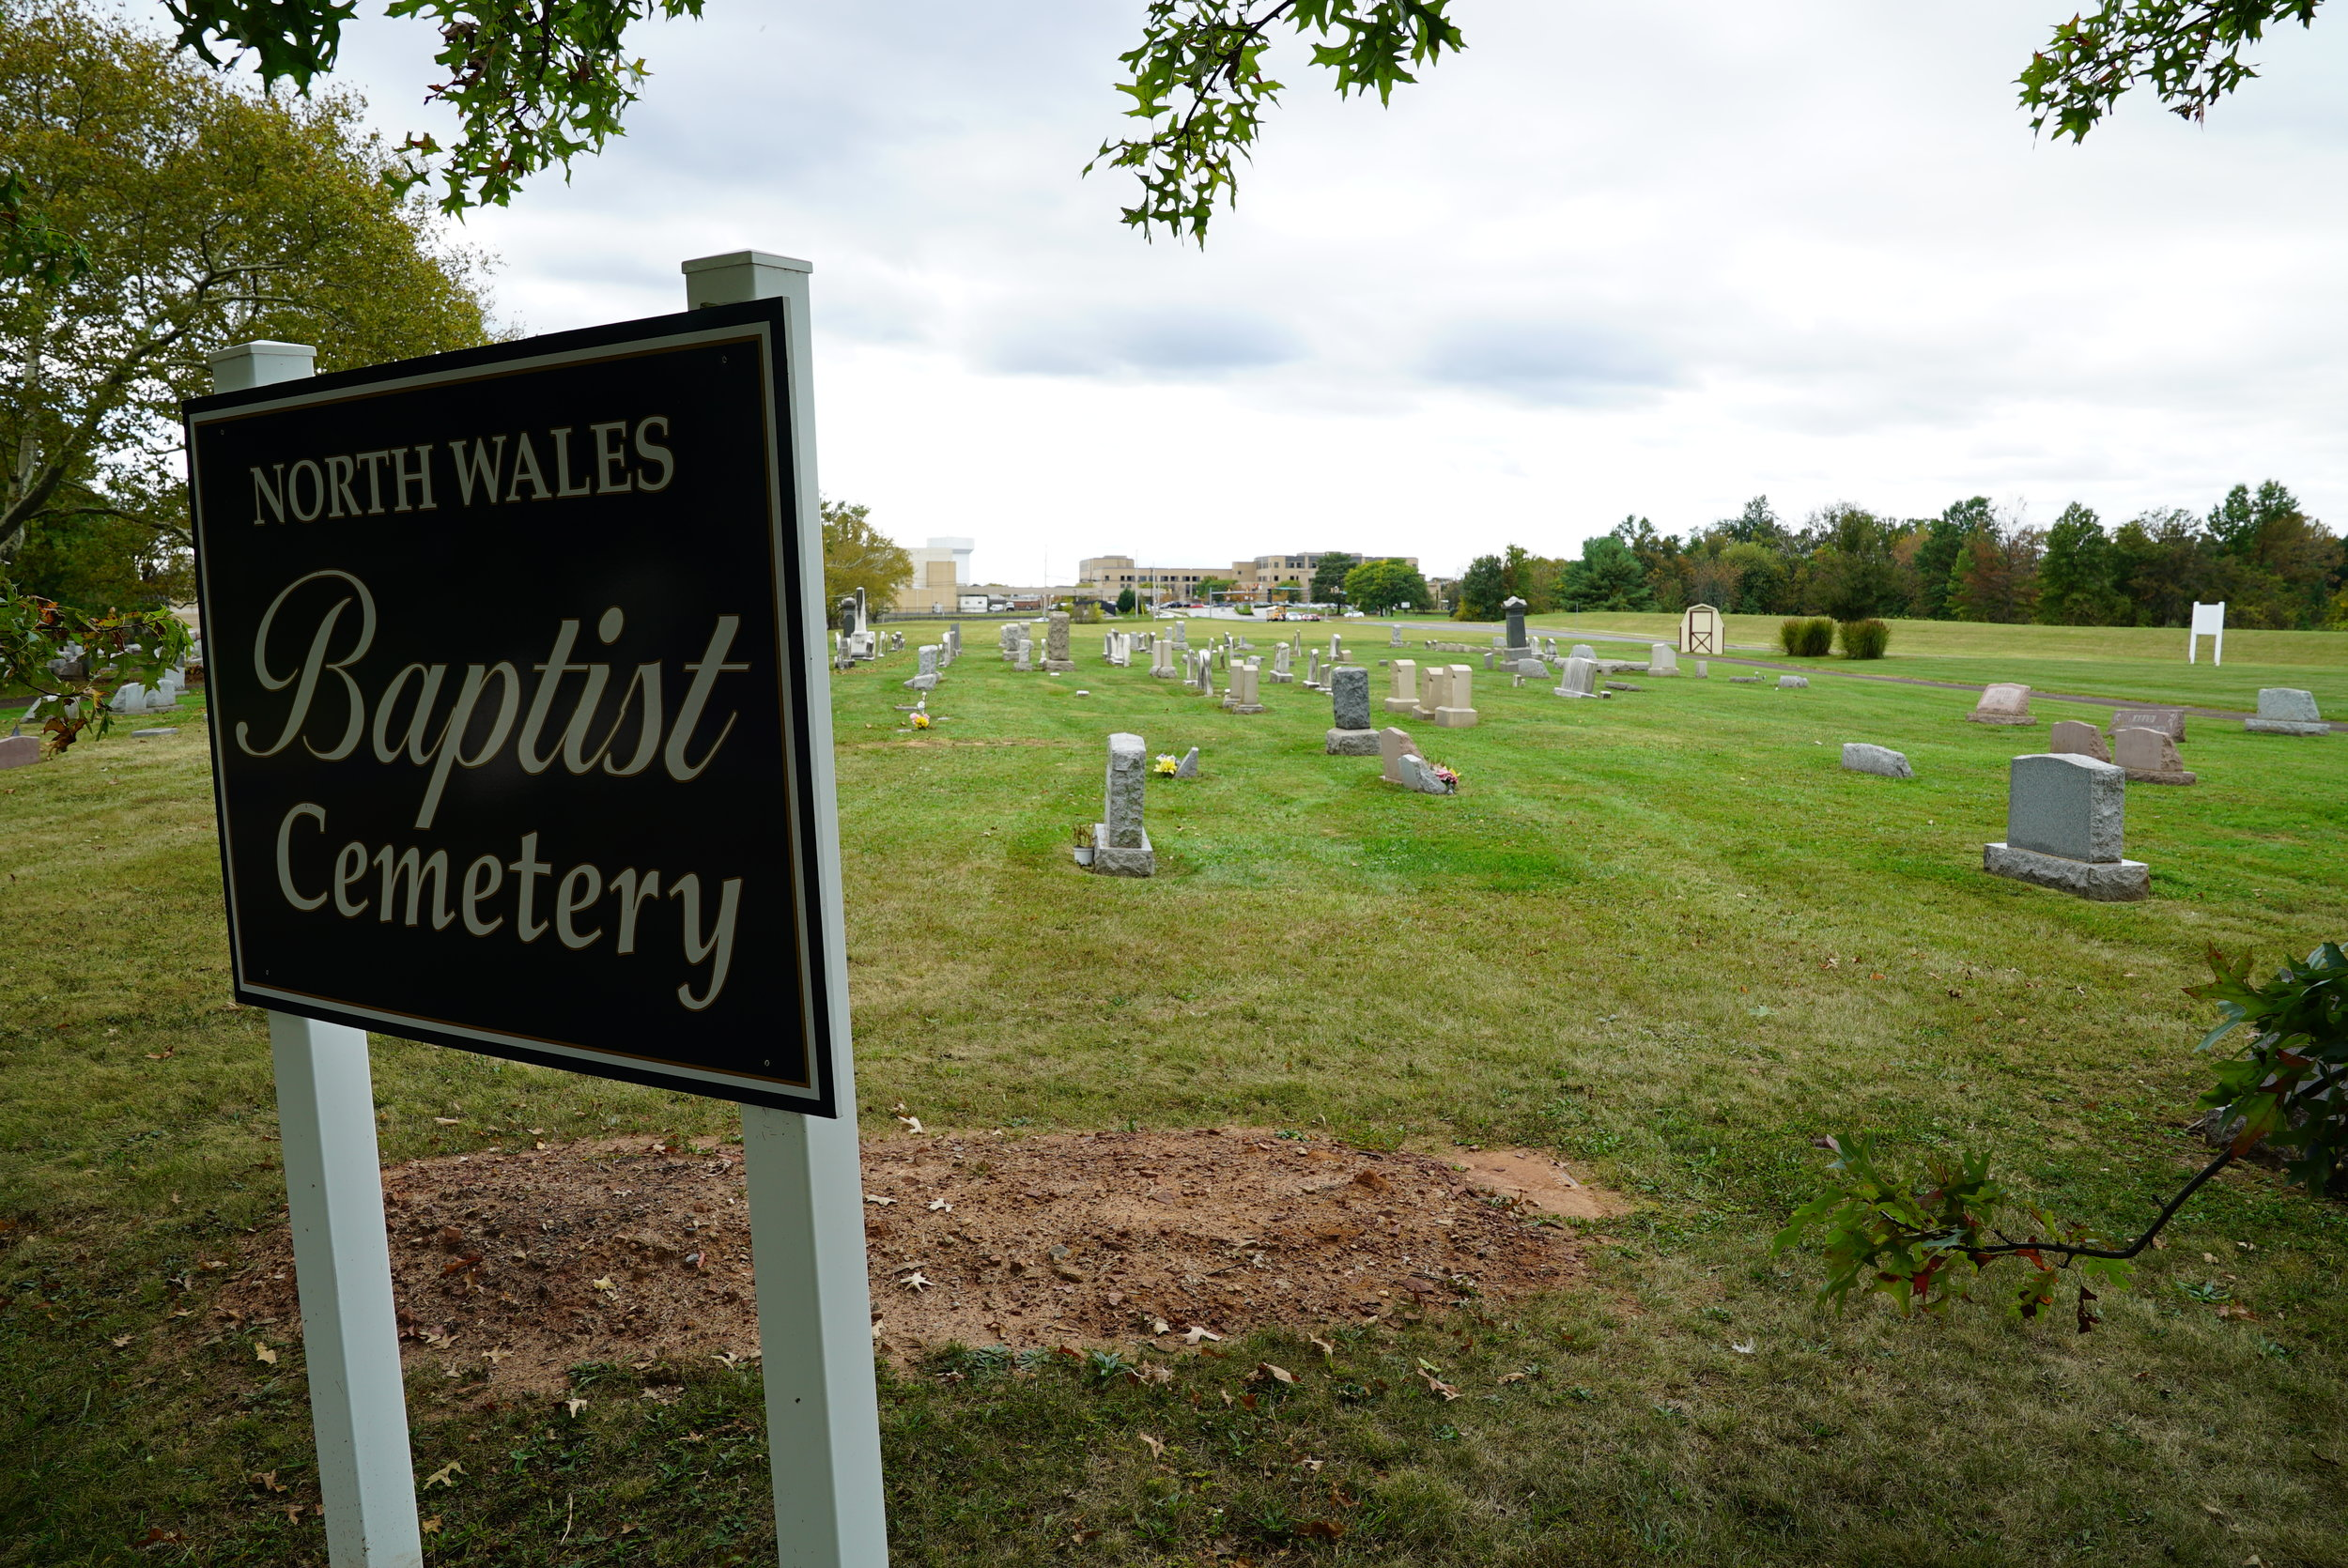 A recent burial. North Wales Baptist Cemetery. Lansdale, Pennsylvania.